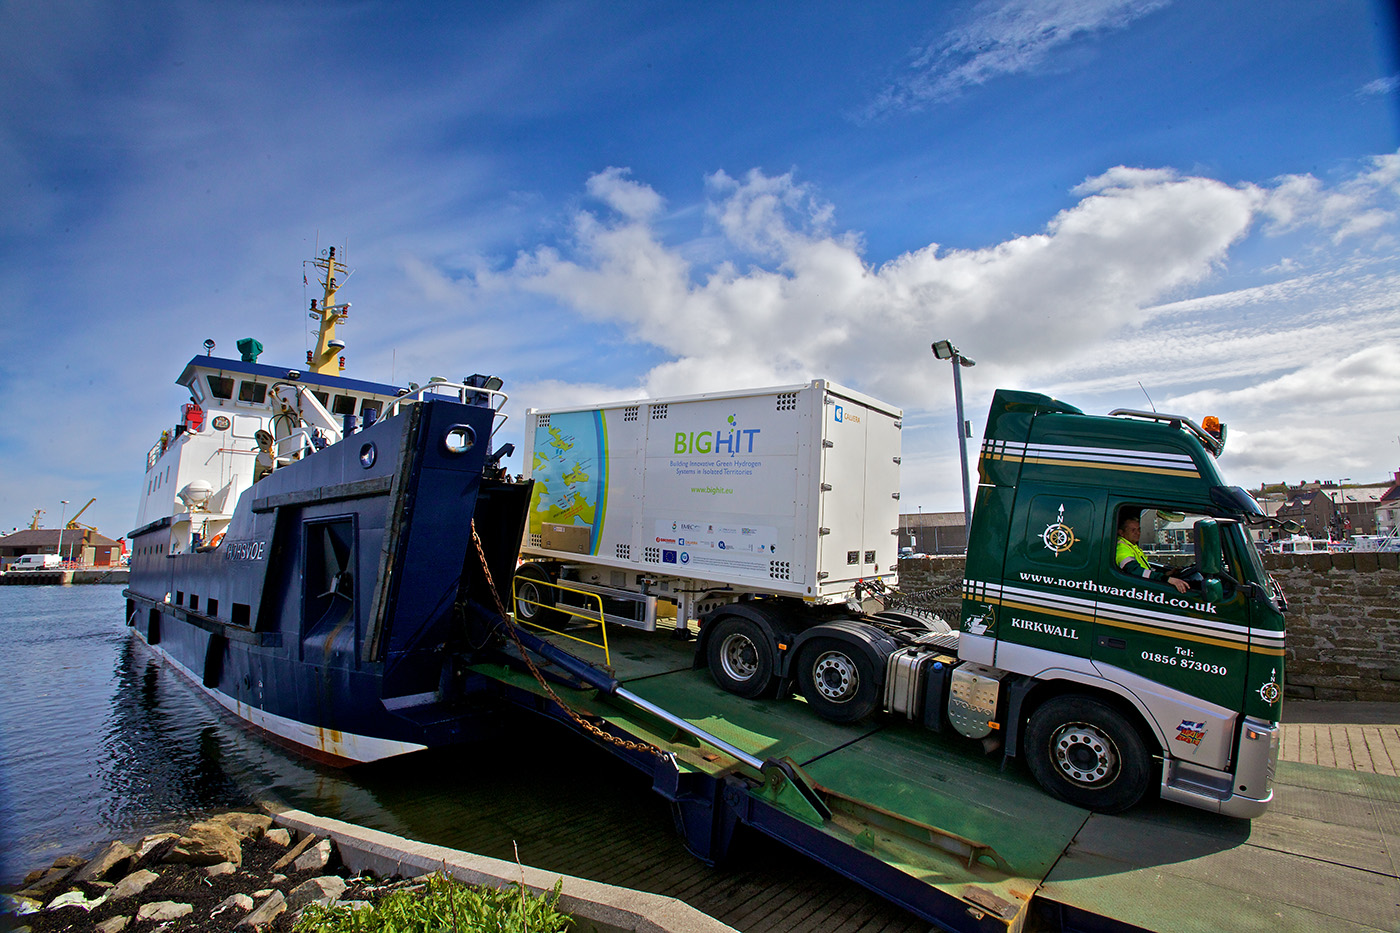 Trucks on Orkney carry hydrogen produced by wind- and tide-powered electrolysis in special lightweight high pressure cylinders, designed to adhere to the low weight limit of the island roads.